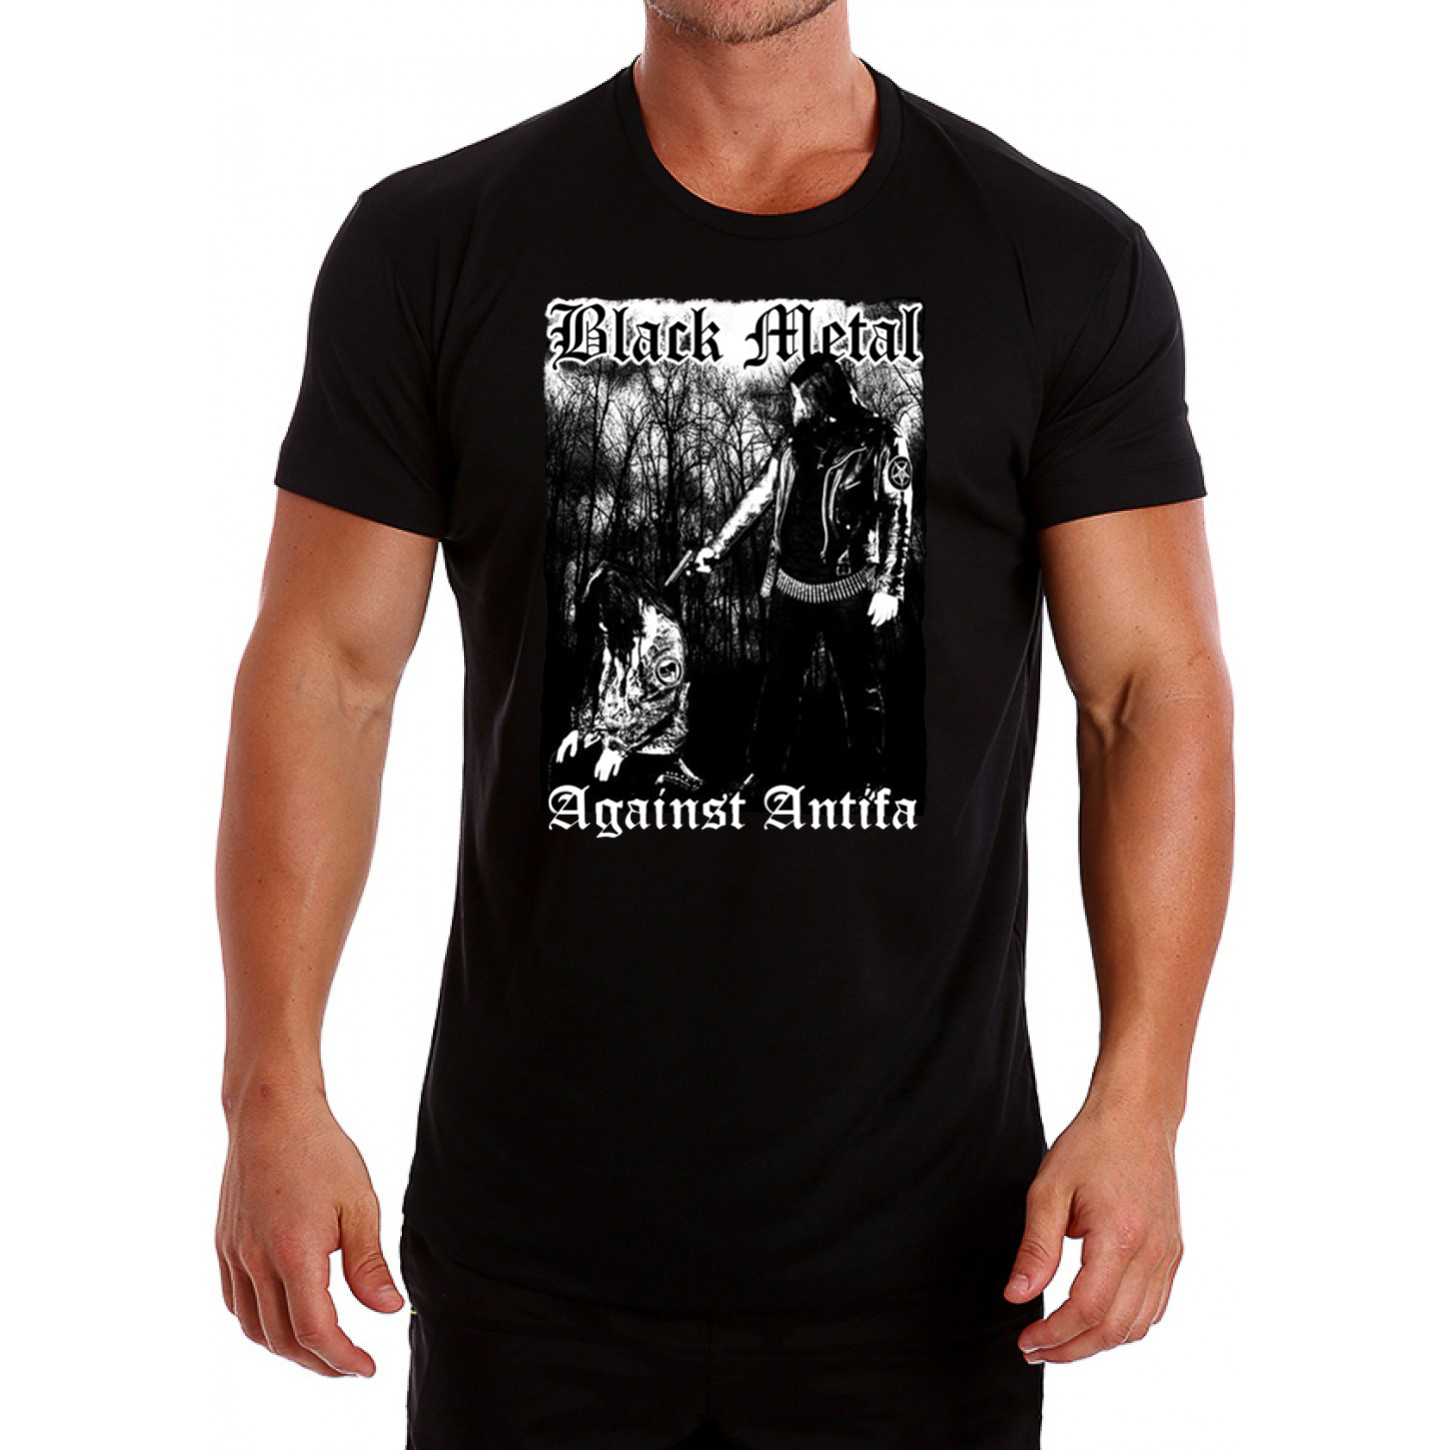 'Black Metal Against Antifa' Behemoth's T Shirt Nergal Reveals Tee